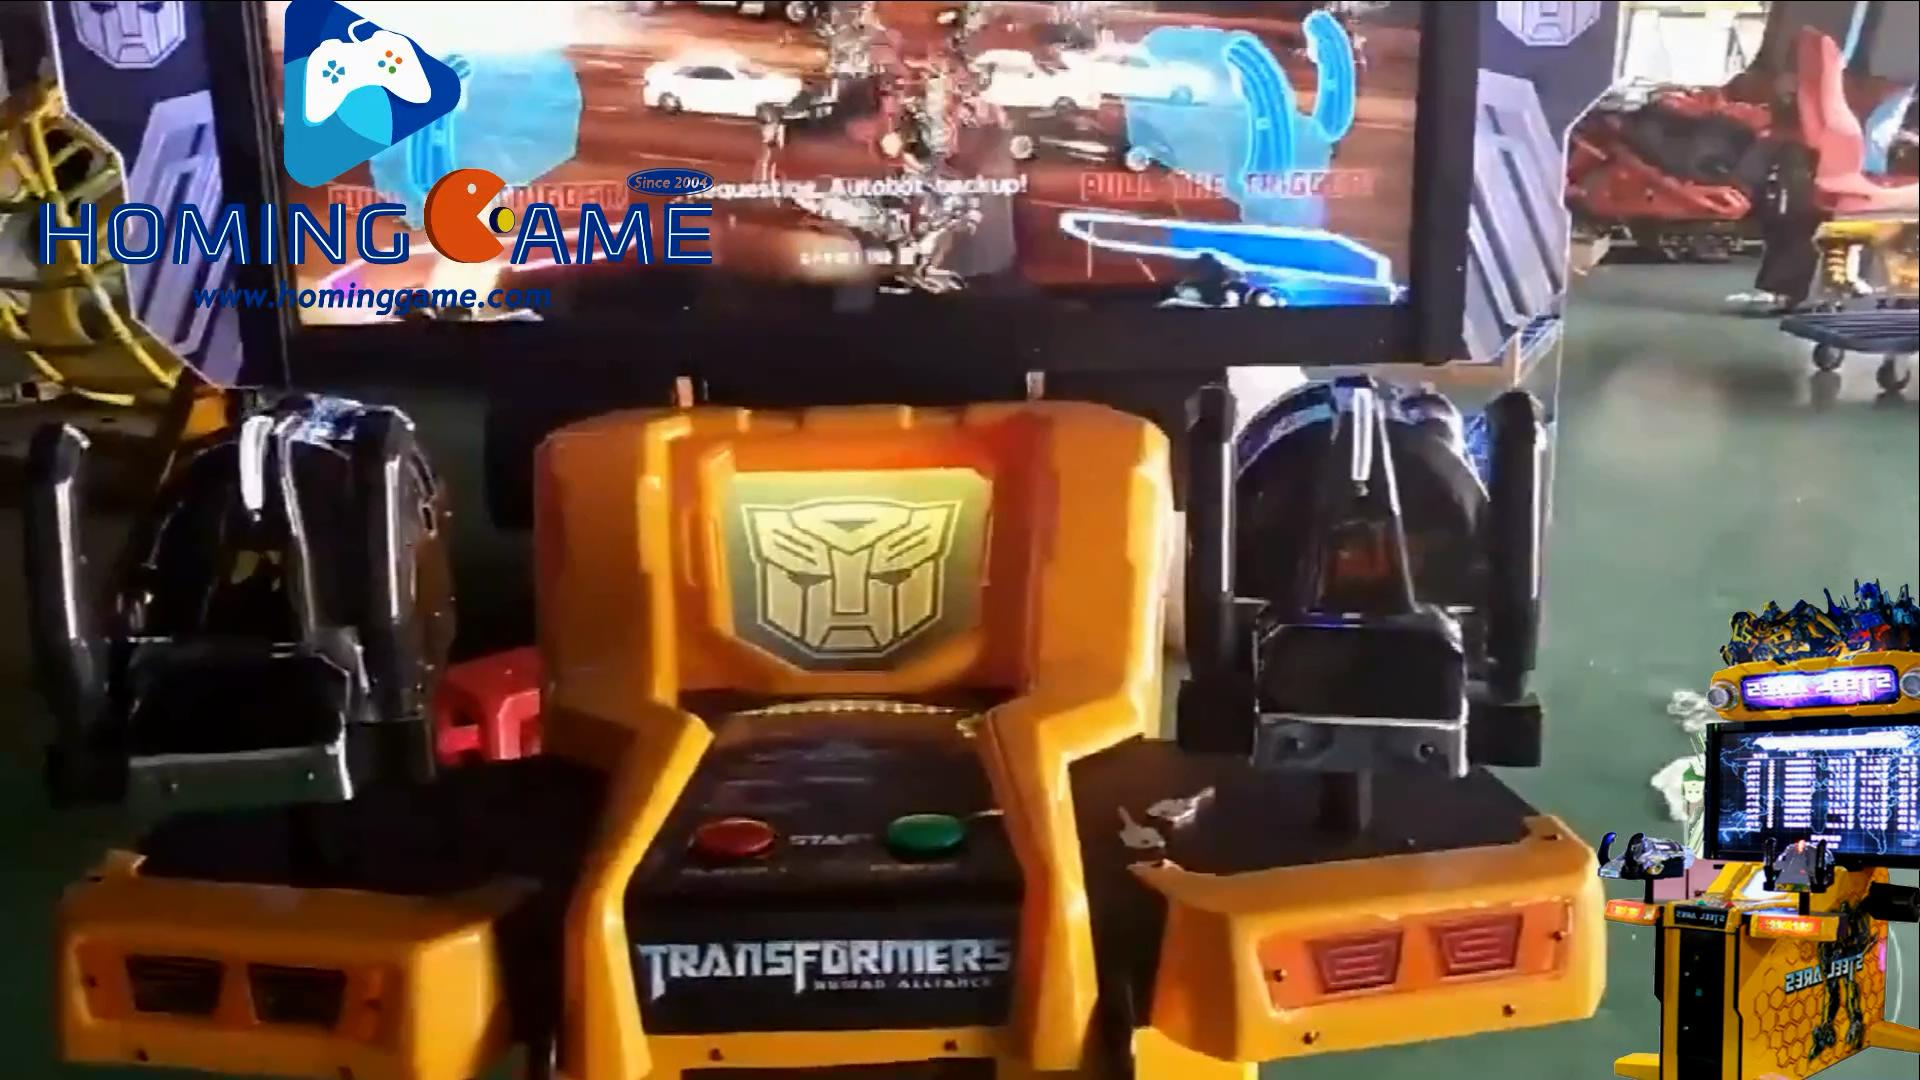 transformer gun shooting game machine,transformer game machine,transformer armor warriors gun shooting game machine,armor warriors simulator game machine,terminator Slavation video gun shooting game machine,Termiator Slavation video gun shooting game,deadhouse 4,coin operated deadhouse 4 gun shooting game machine,coin operated deadhouse 4 arcade game machine,dead house 4 gun shooting simulator game machine,simulator game machine,video game machine,gun shooting video game machine,game machine,arcade game machine,coin operated game machine,indoor game machine,electrical game machine,amusement park game equipment,game machine for sale,game machine supplier,game machine factory,hominggame,www.gametube.hk,hominggame simulator game machine,video arcade game machine,entertainment game machine,family entertainment game machine,aliens gun shooting game machine,time crisis 4 gun shooting game machine,let